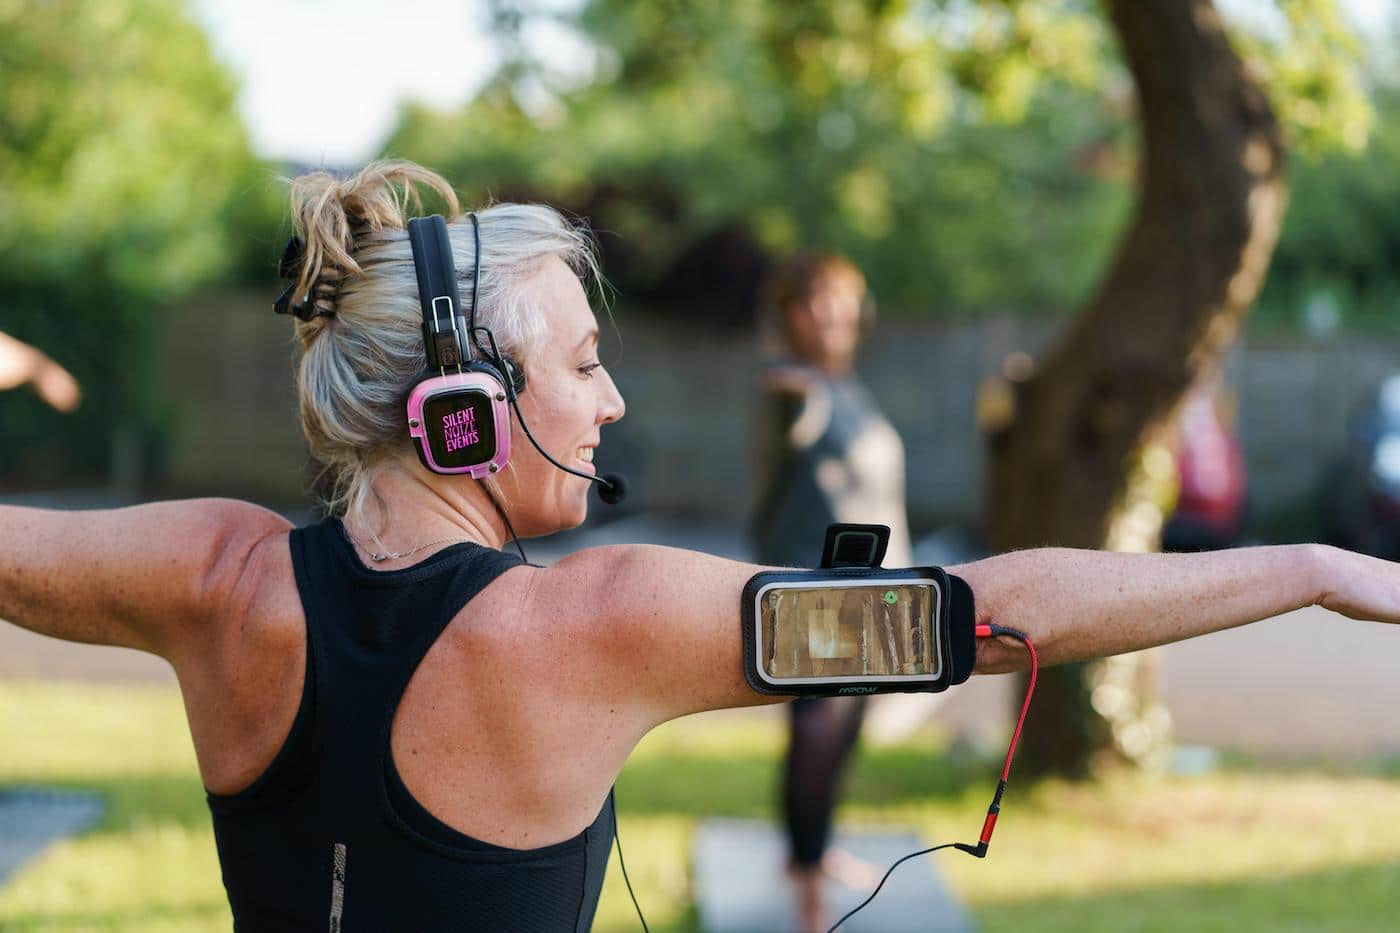 Silent Noize Brings Peace Of Mind To Outdoor Fitness